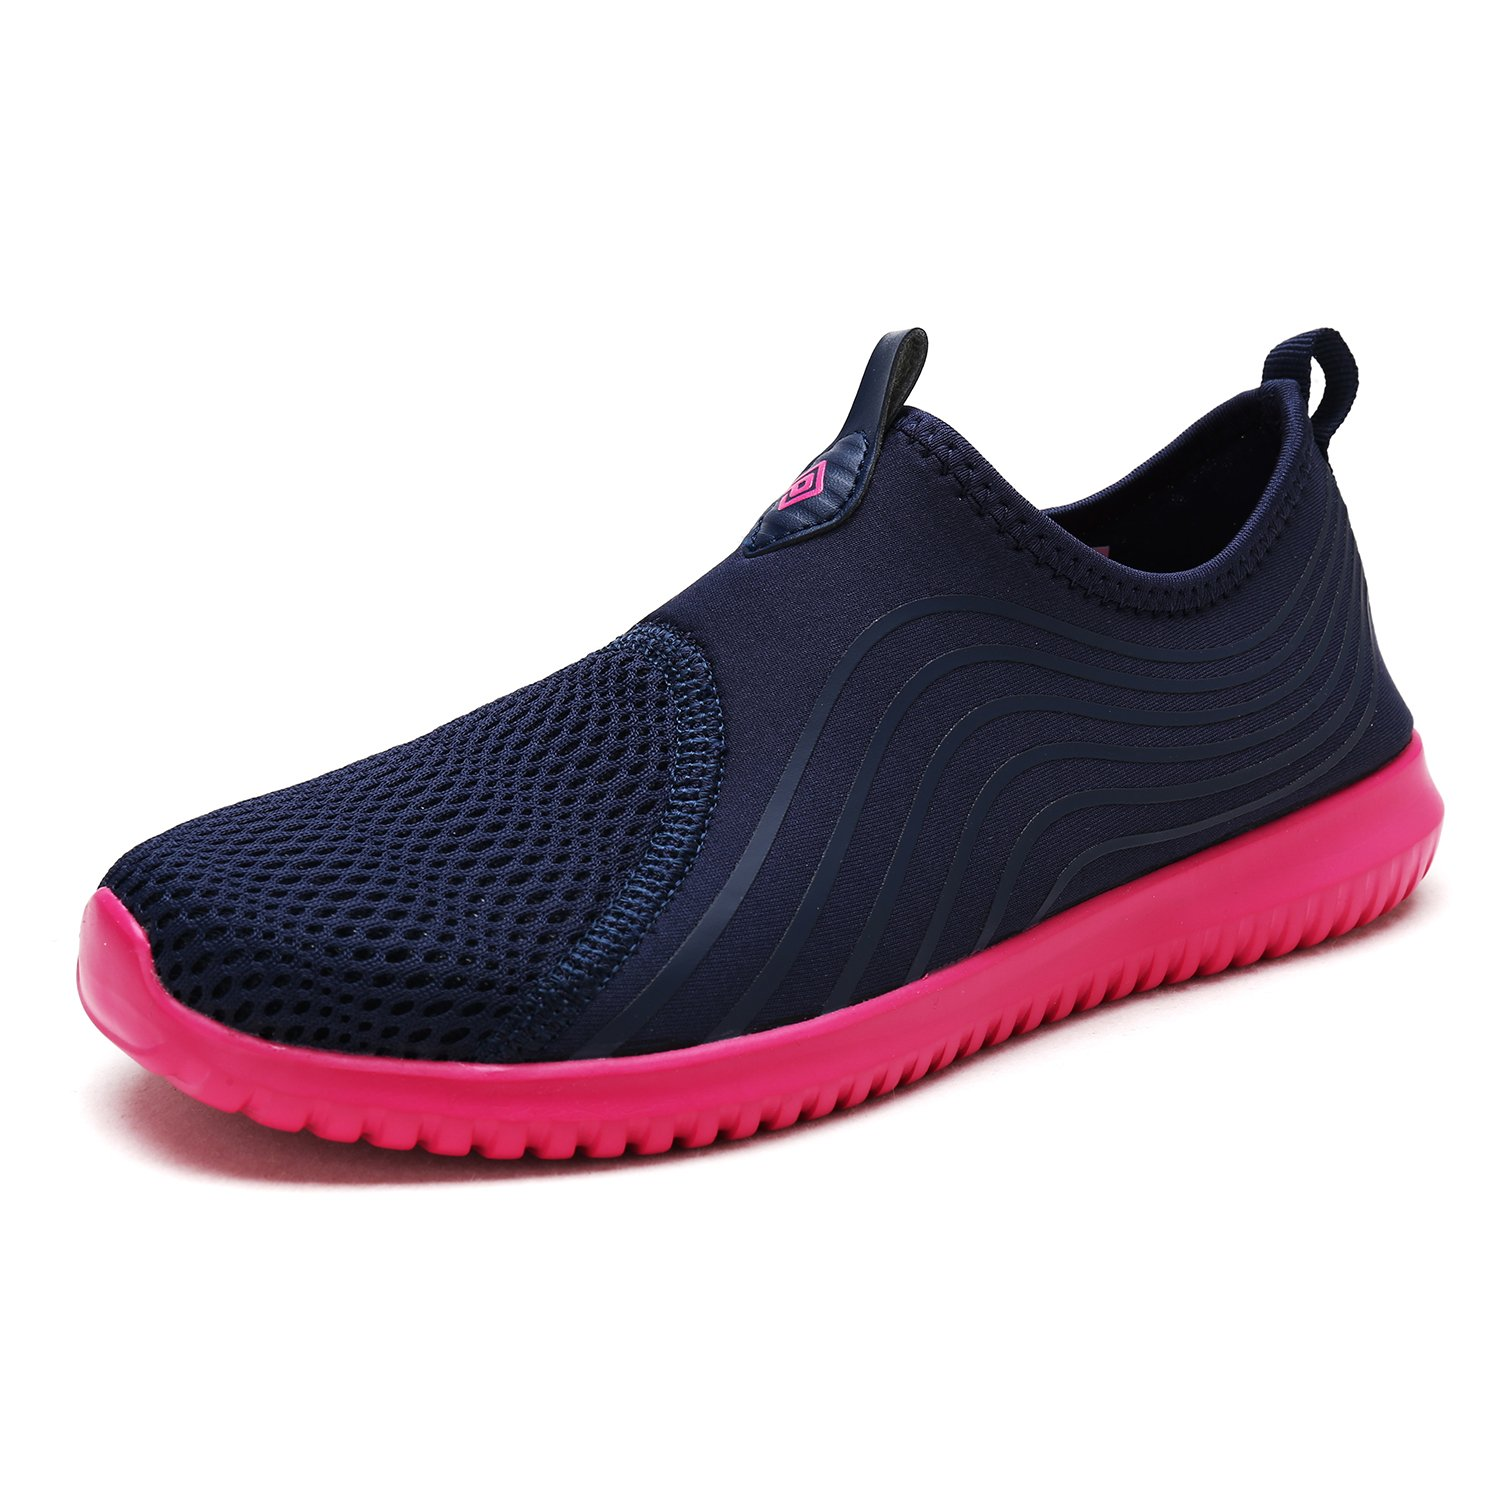 DREAM PAIRS Quick-Dry Water Shoes Sports Walking Casual 9.5 Sneakers for Women B07885MSSC 9.5 Casual M US|Navy/H.pink 793709